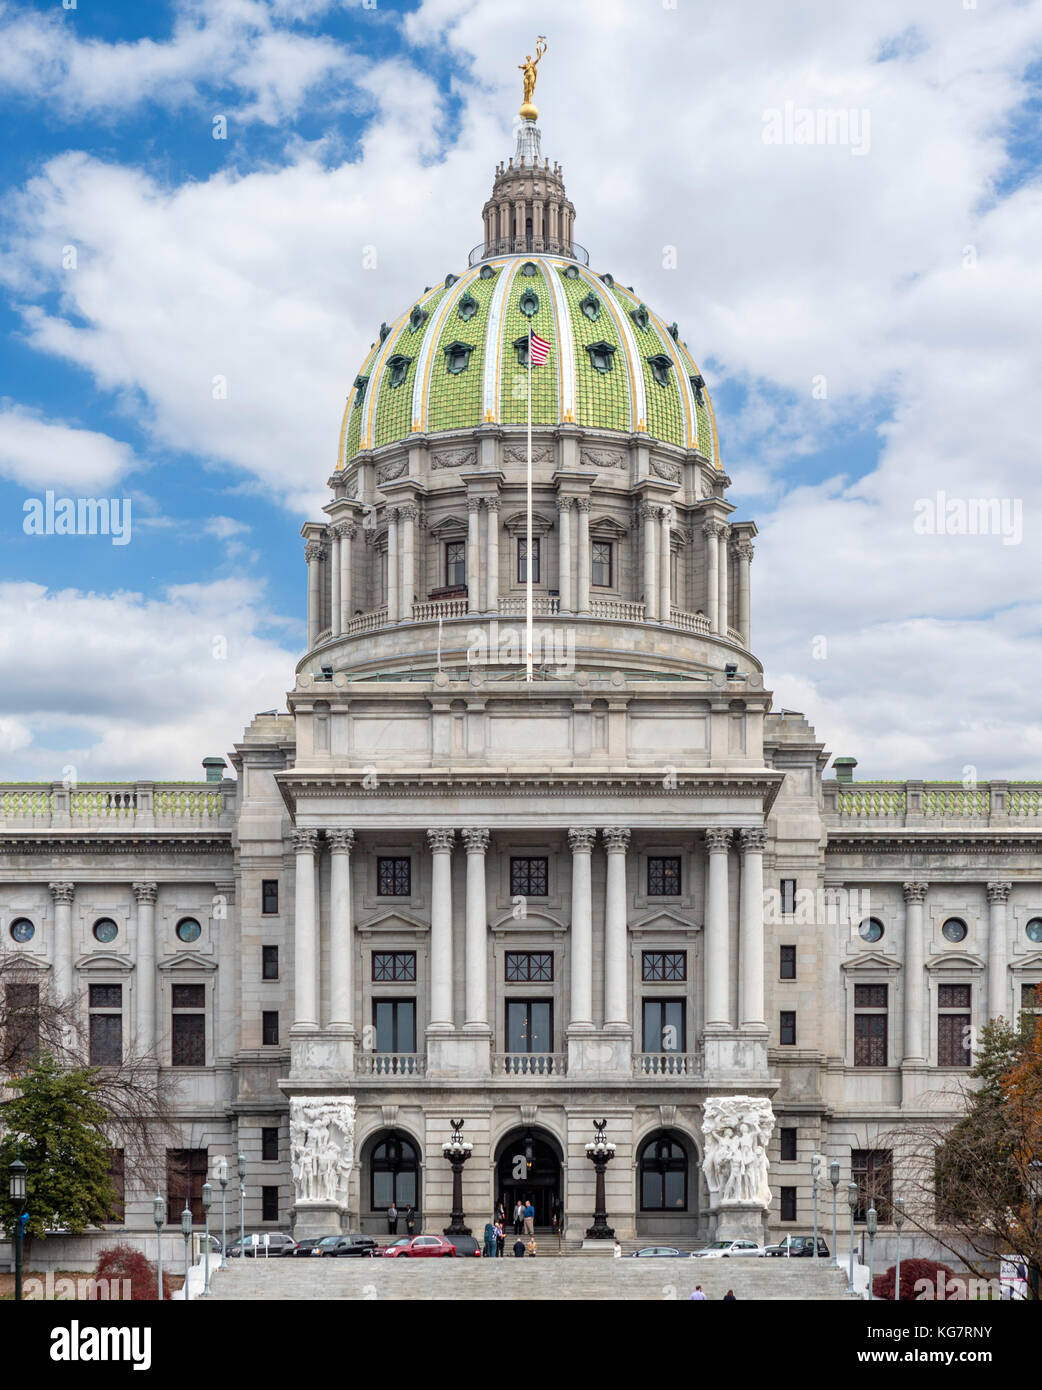 La Pennsylvania State Capitol, Harrisburg, Pennsylvanie, USA Photo Stock